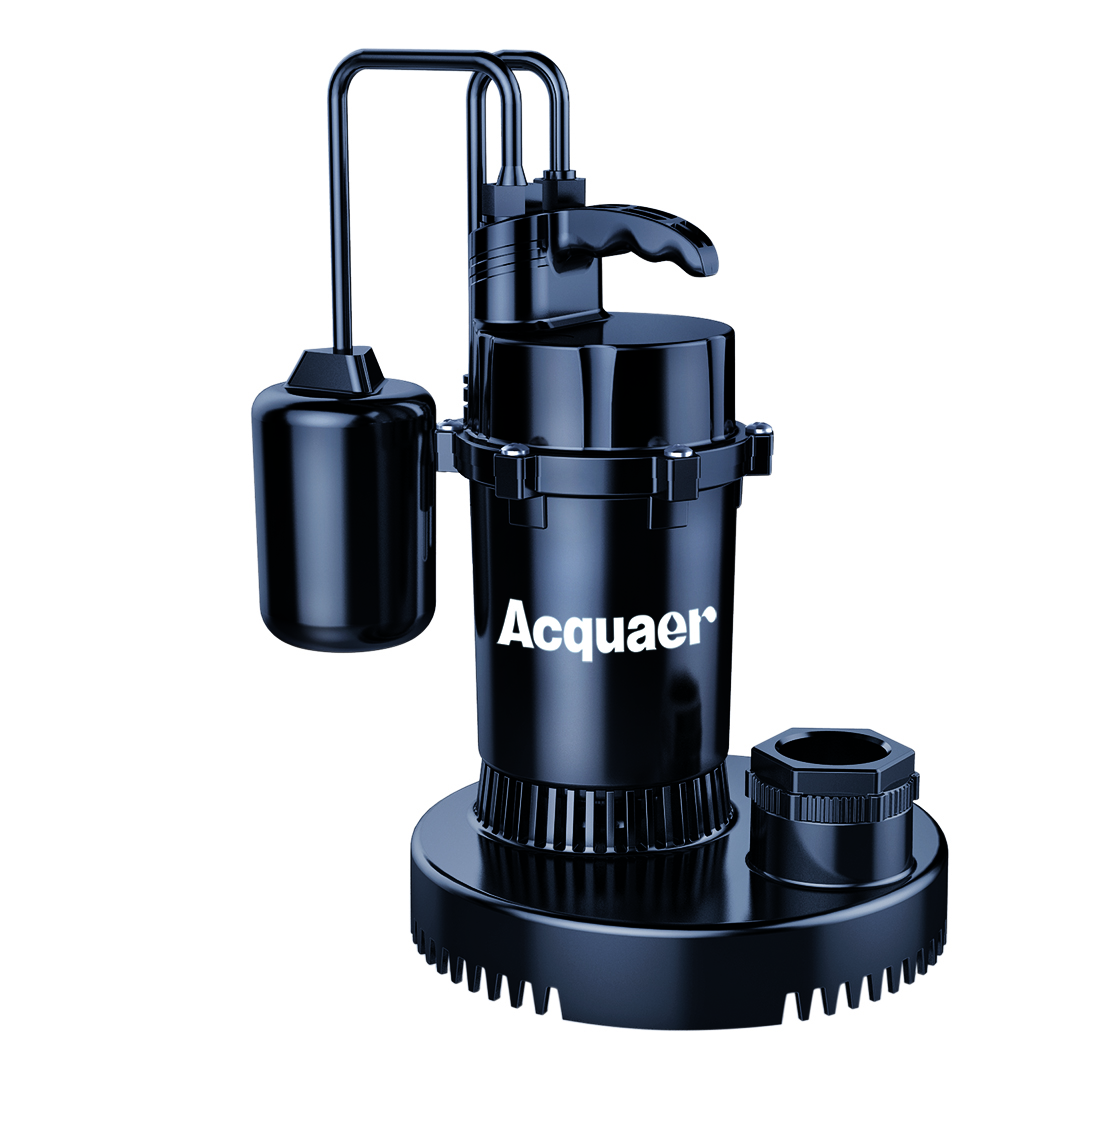 Acquaer 1//3 HP Submersible Utility Pump,Thermoplastic